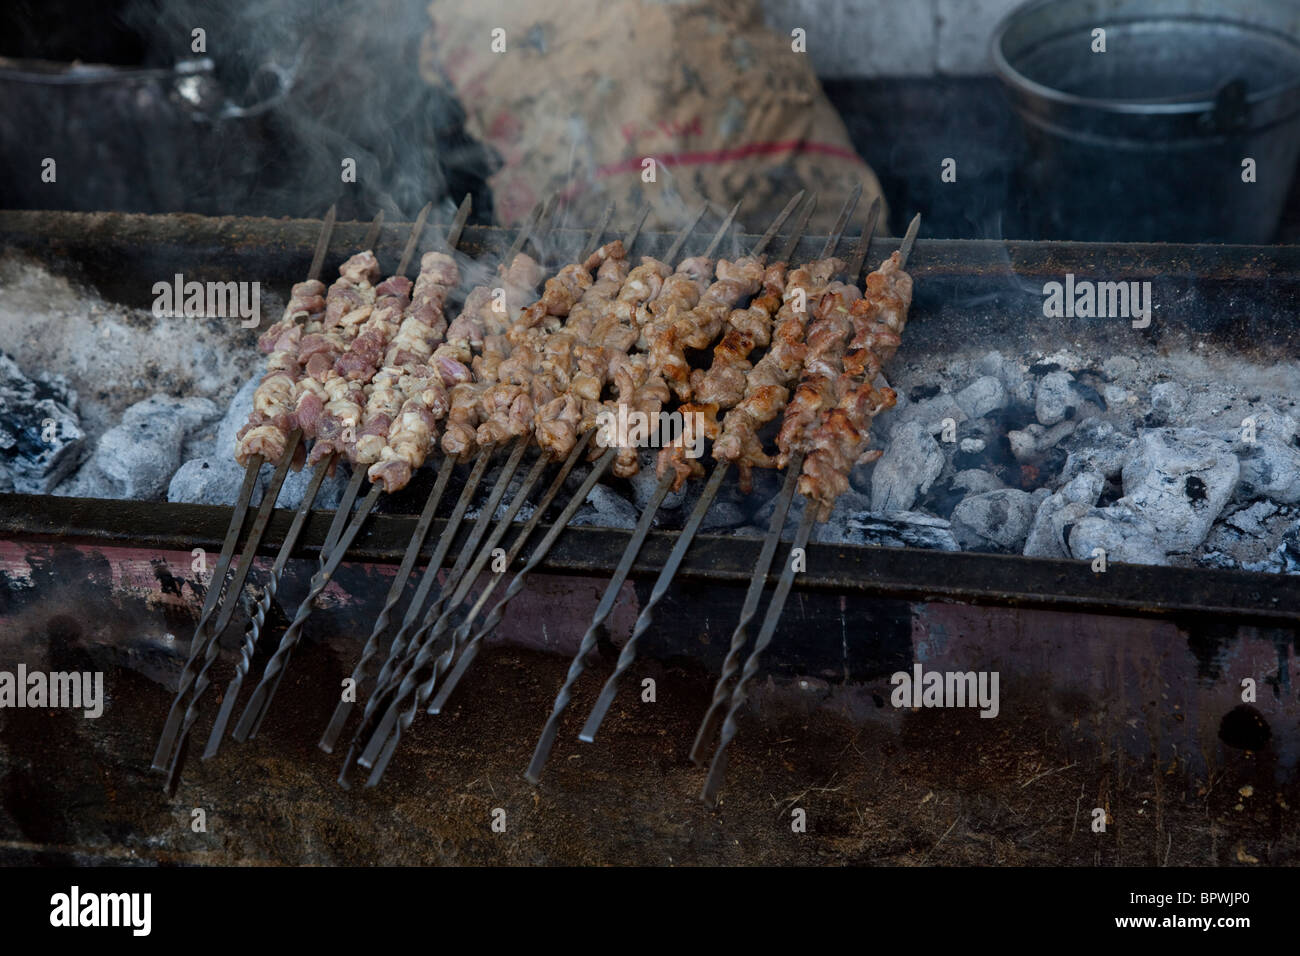 Meat being grilled at the bazaar in Turpan, Xinjiang, China. - Stock Image